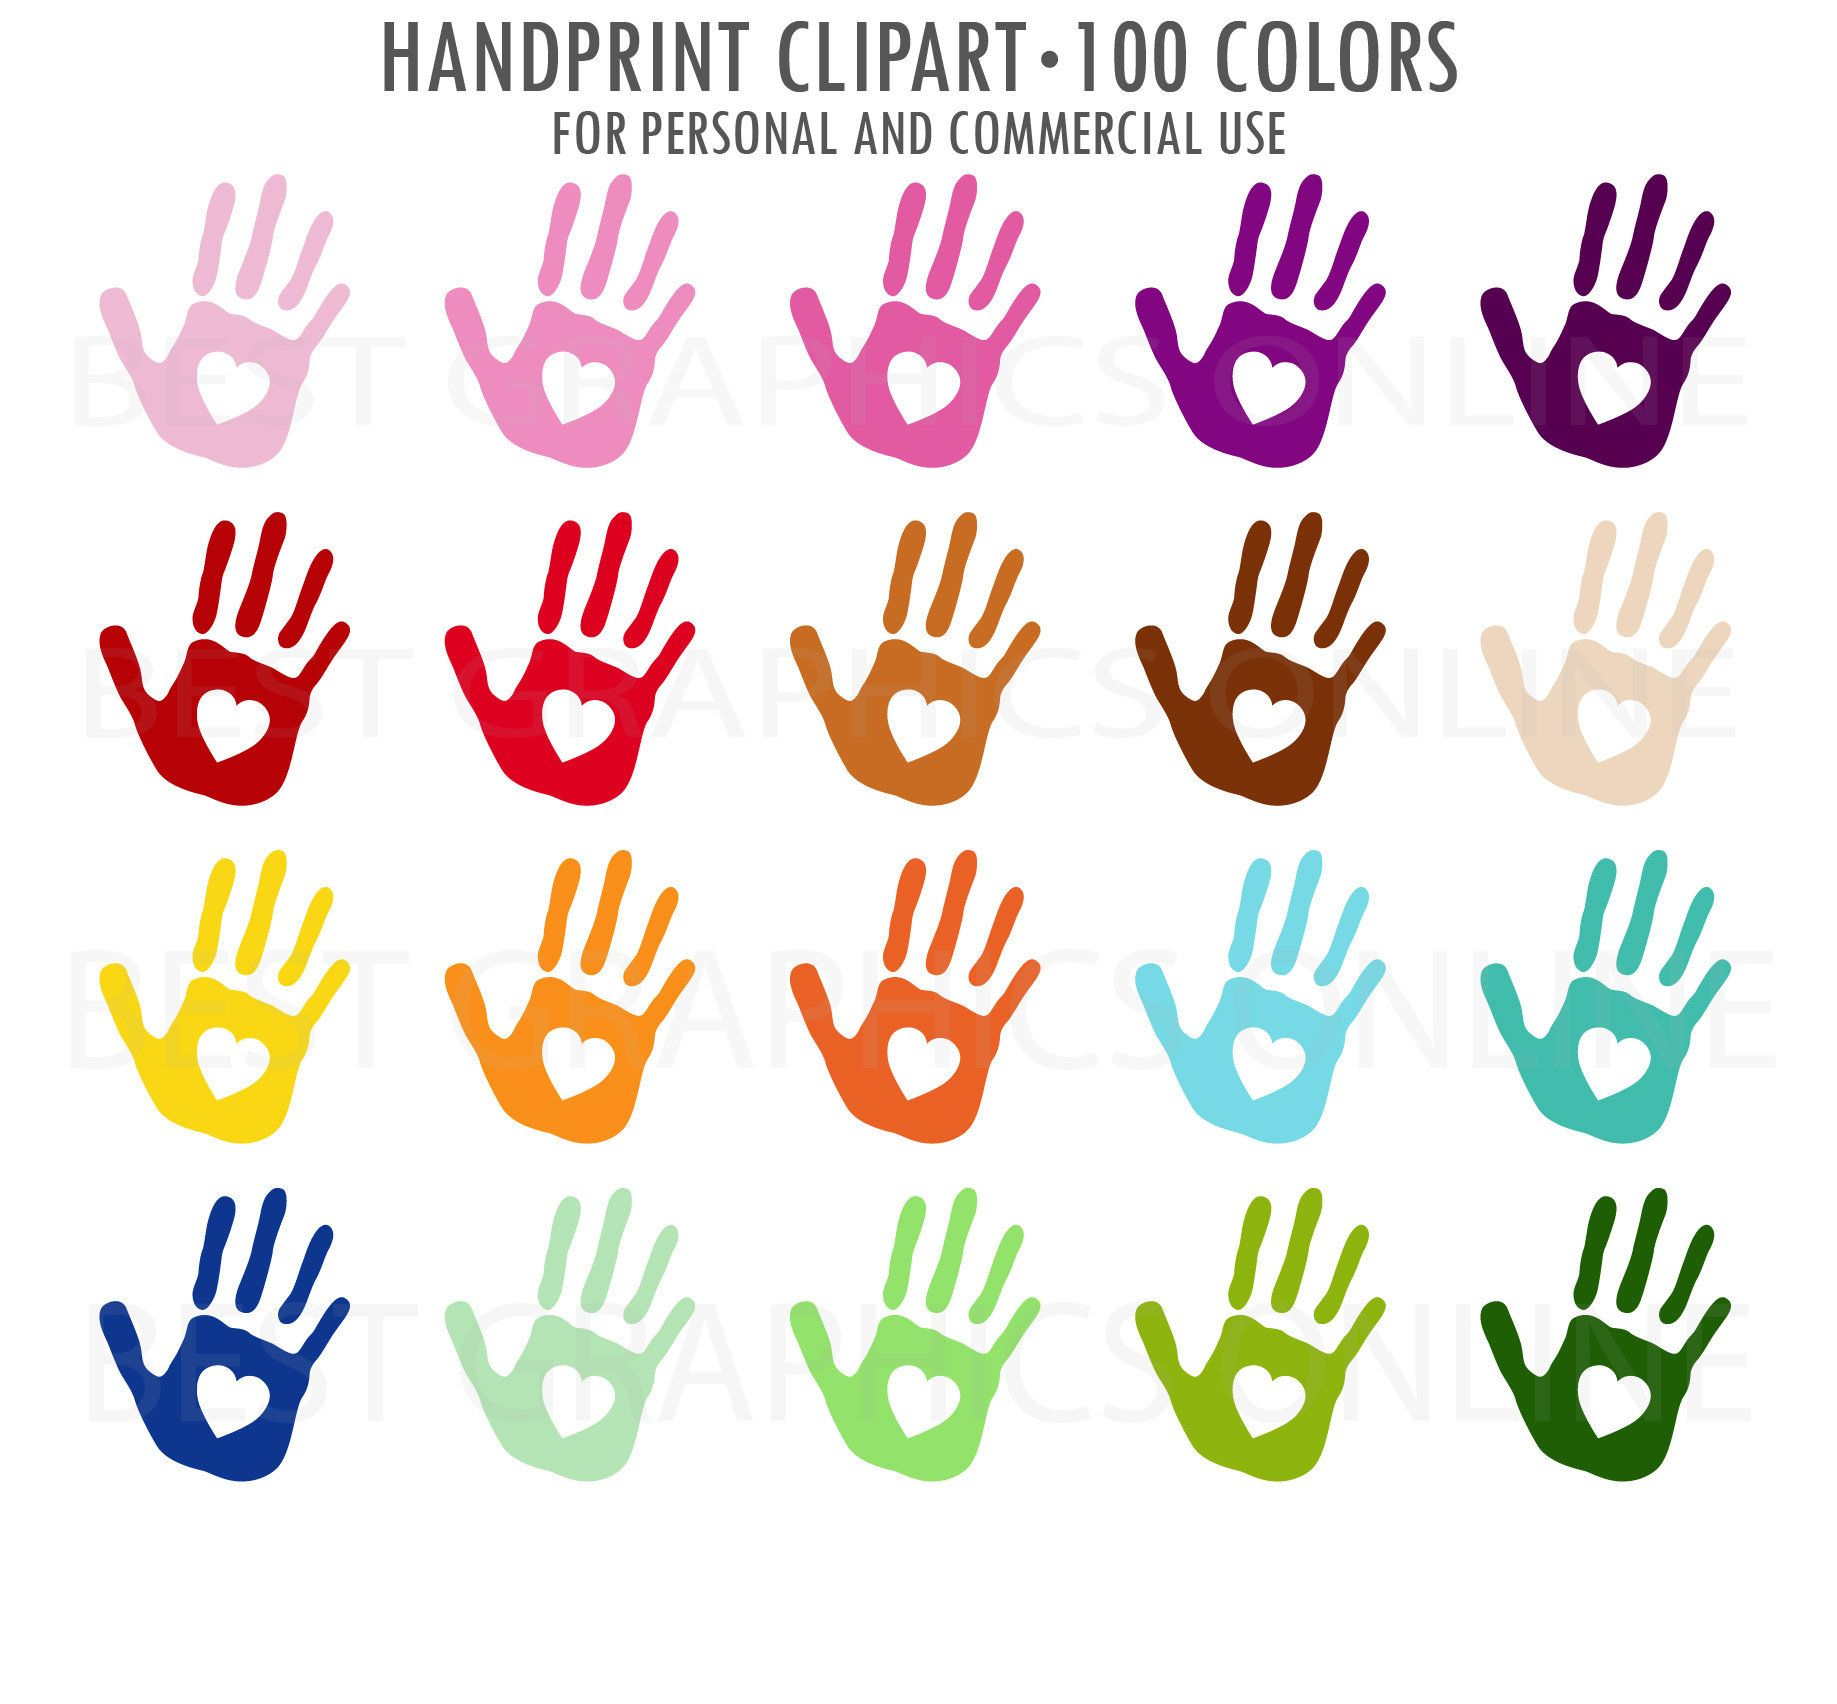 Hand Prints Clipart Painted Hands Clipart Kids Baby Hand Print Colorful Child Rainbow Handprints Children Clip Art Pai Baby Handprint Clip Art Hand Clipart